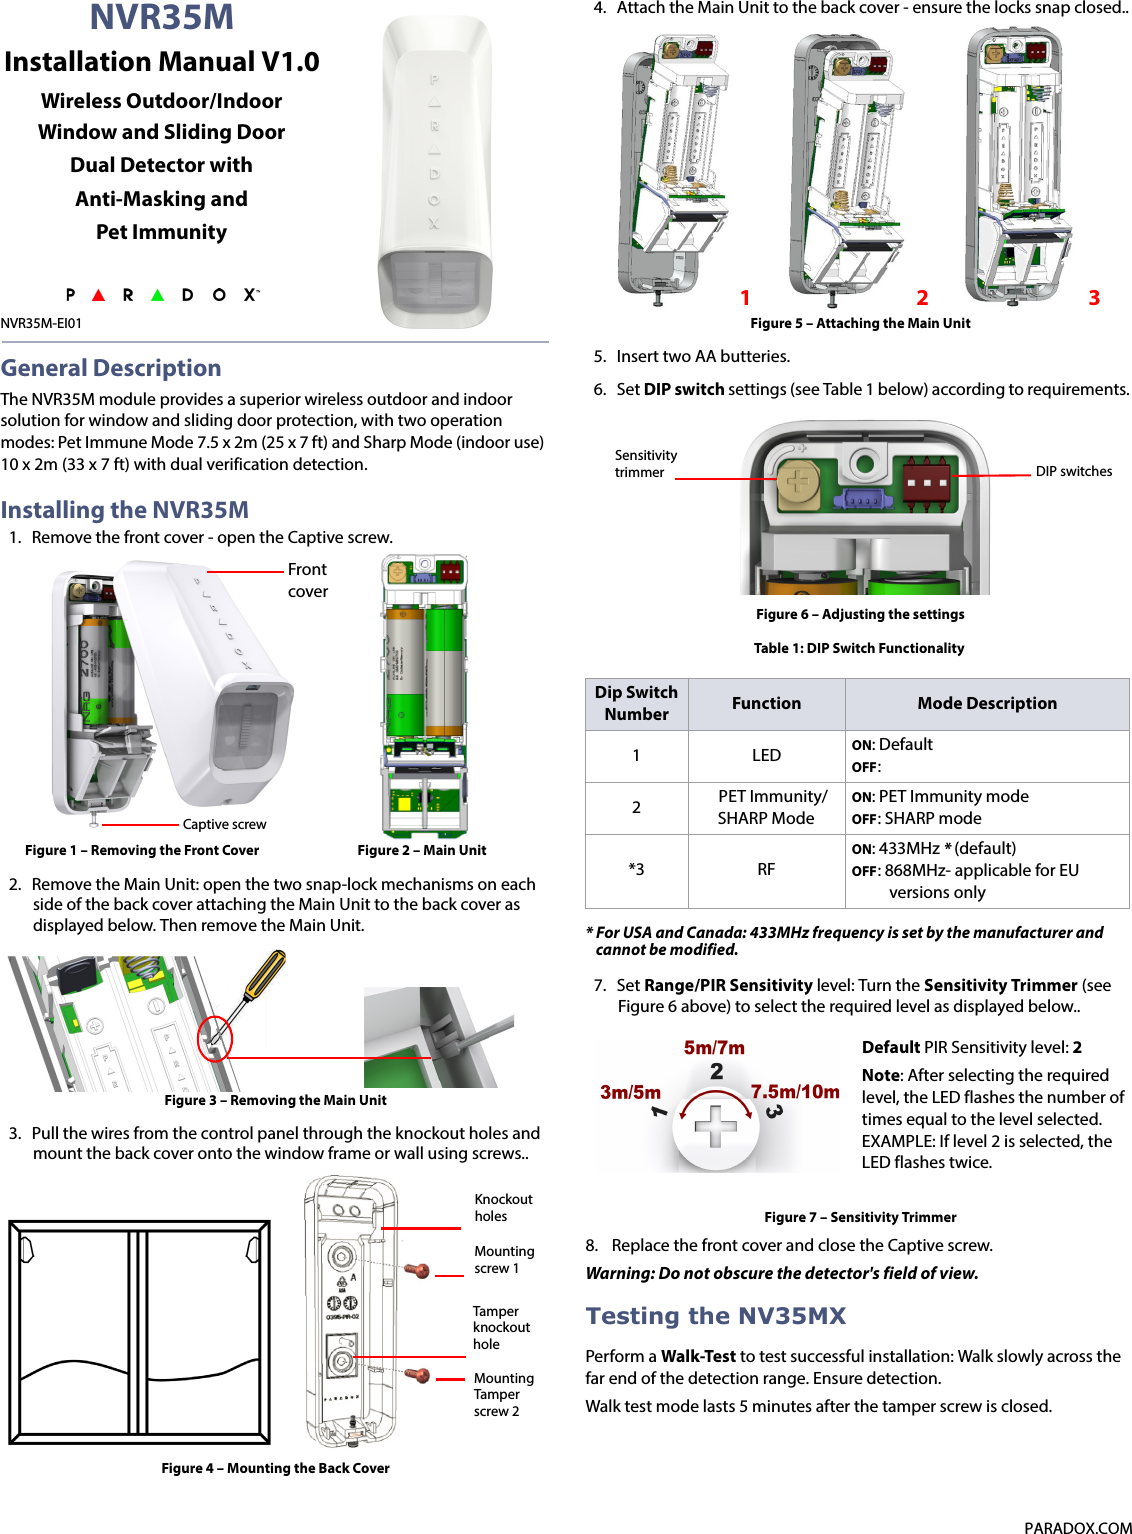 ids alarm system installation manual